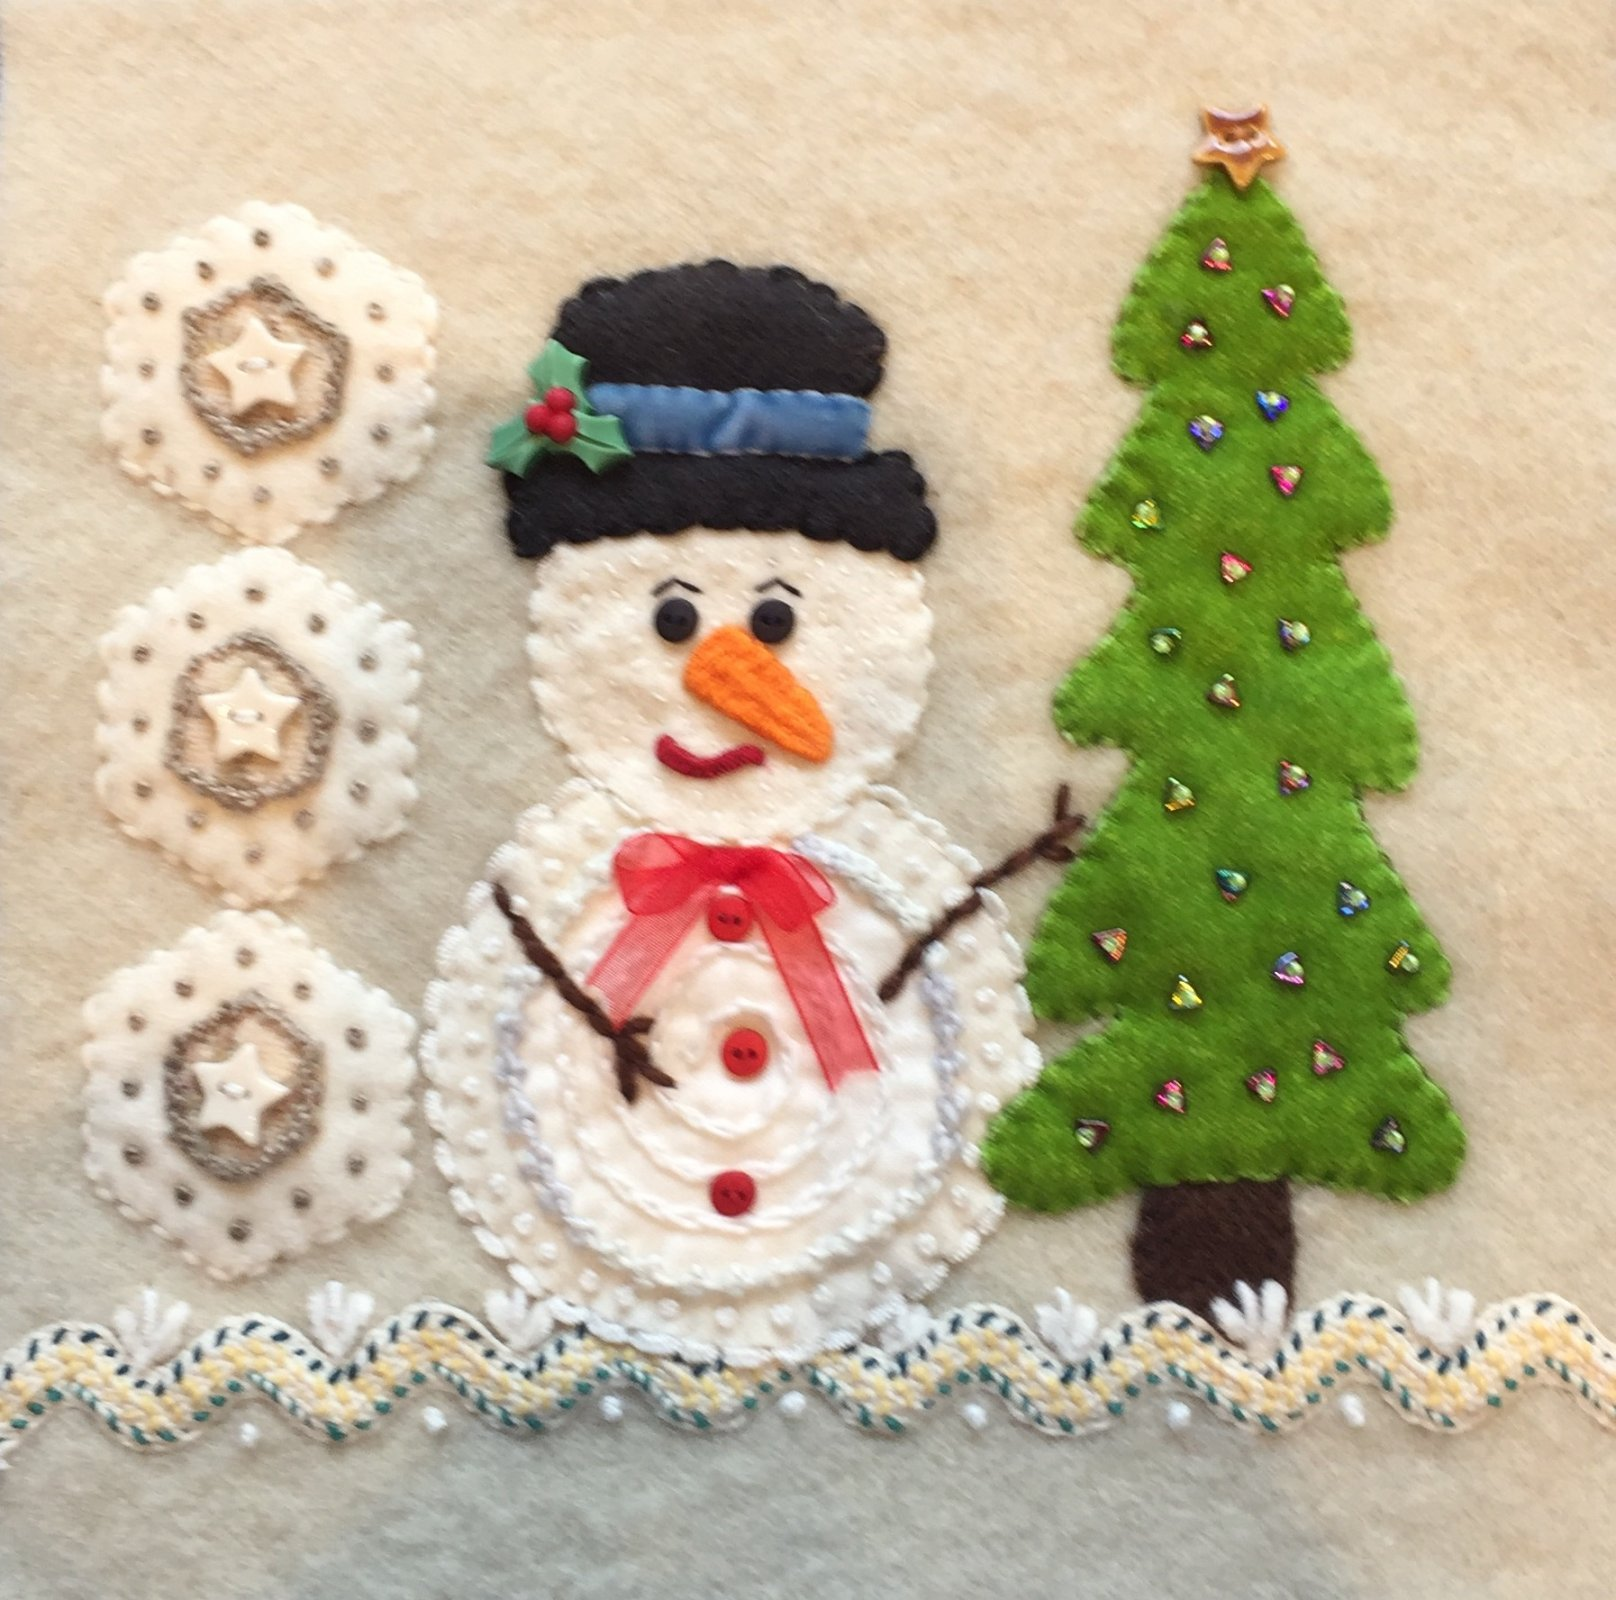 Winter Wonderland Wooly Block Adventure Kit